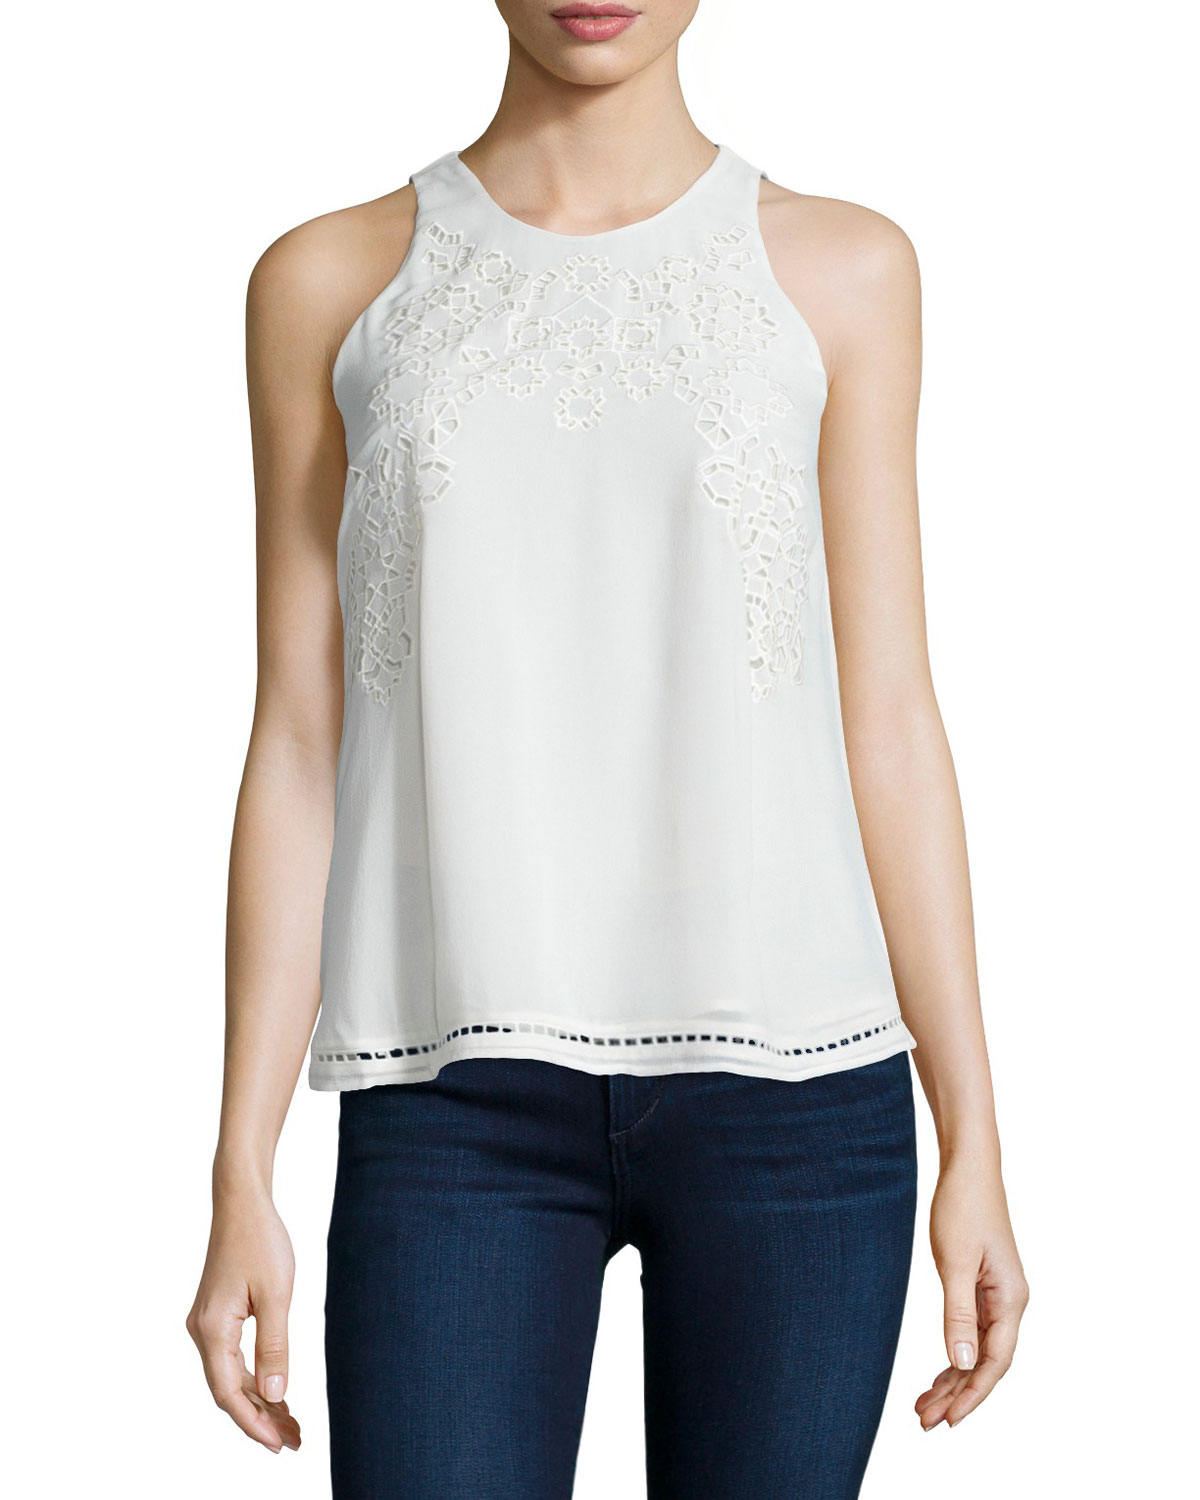 Joie Perdue Crocheted Sleeveless Top, Size: M, Porcelain